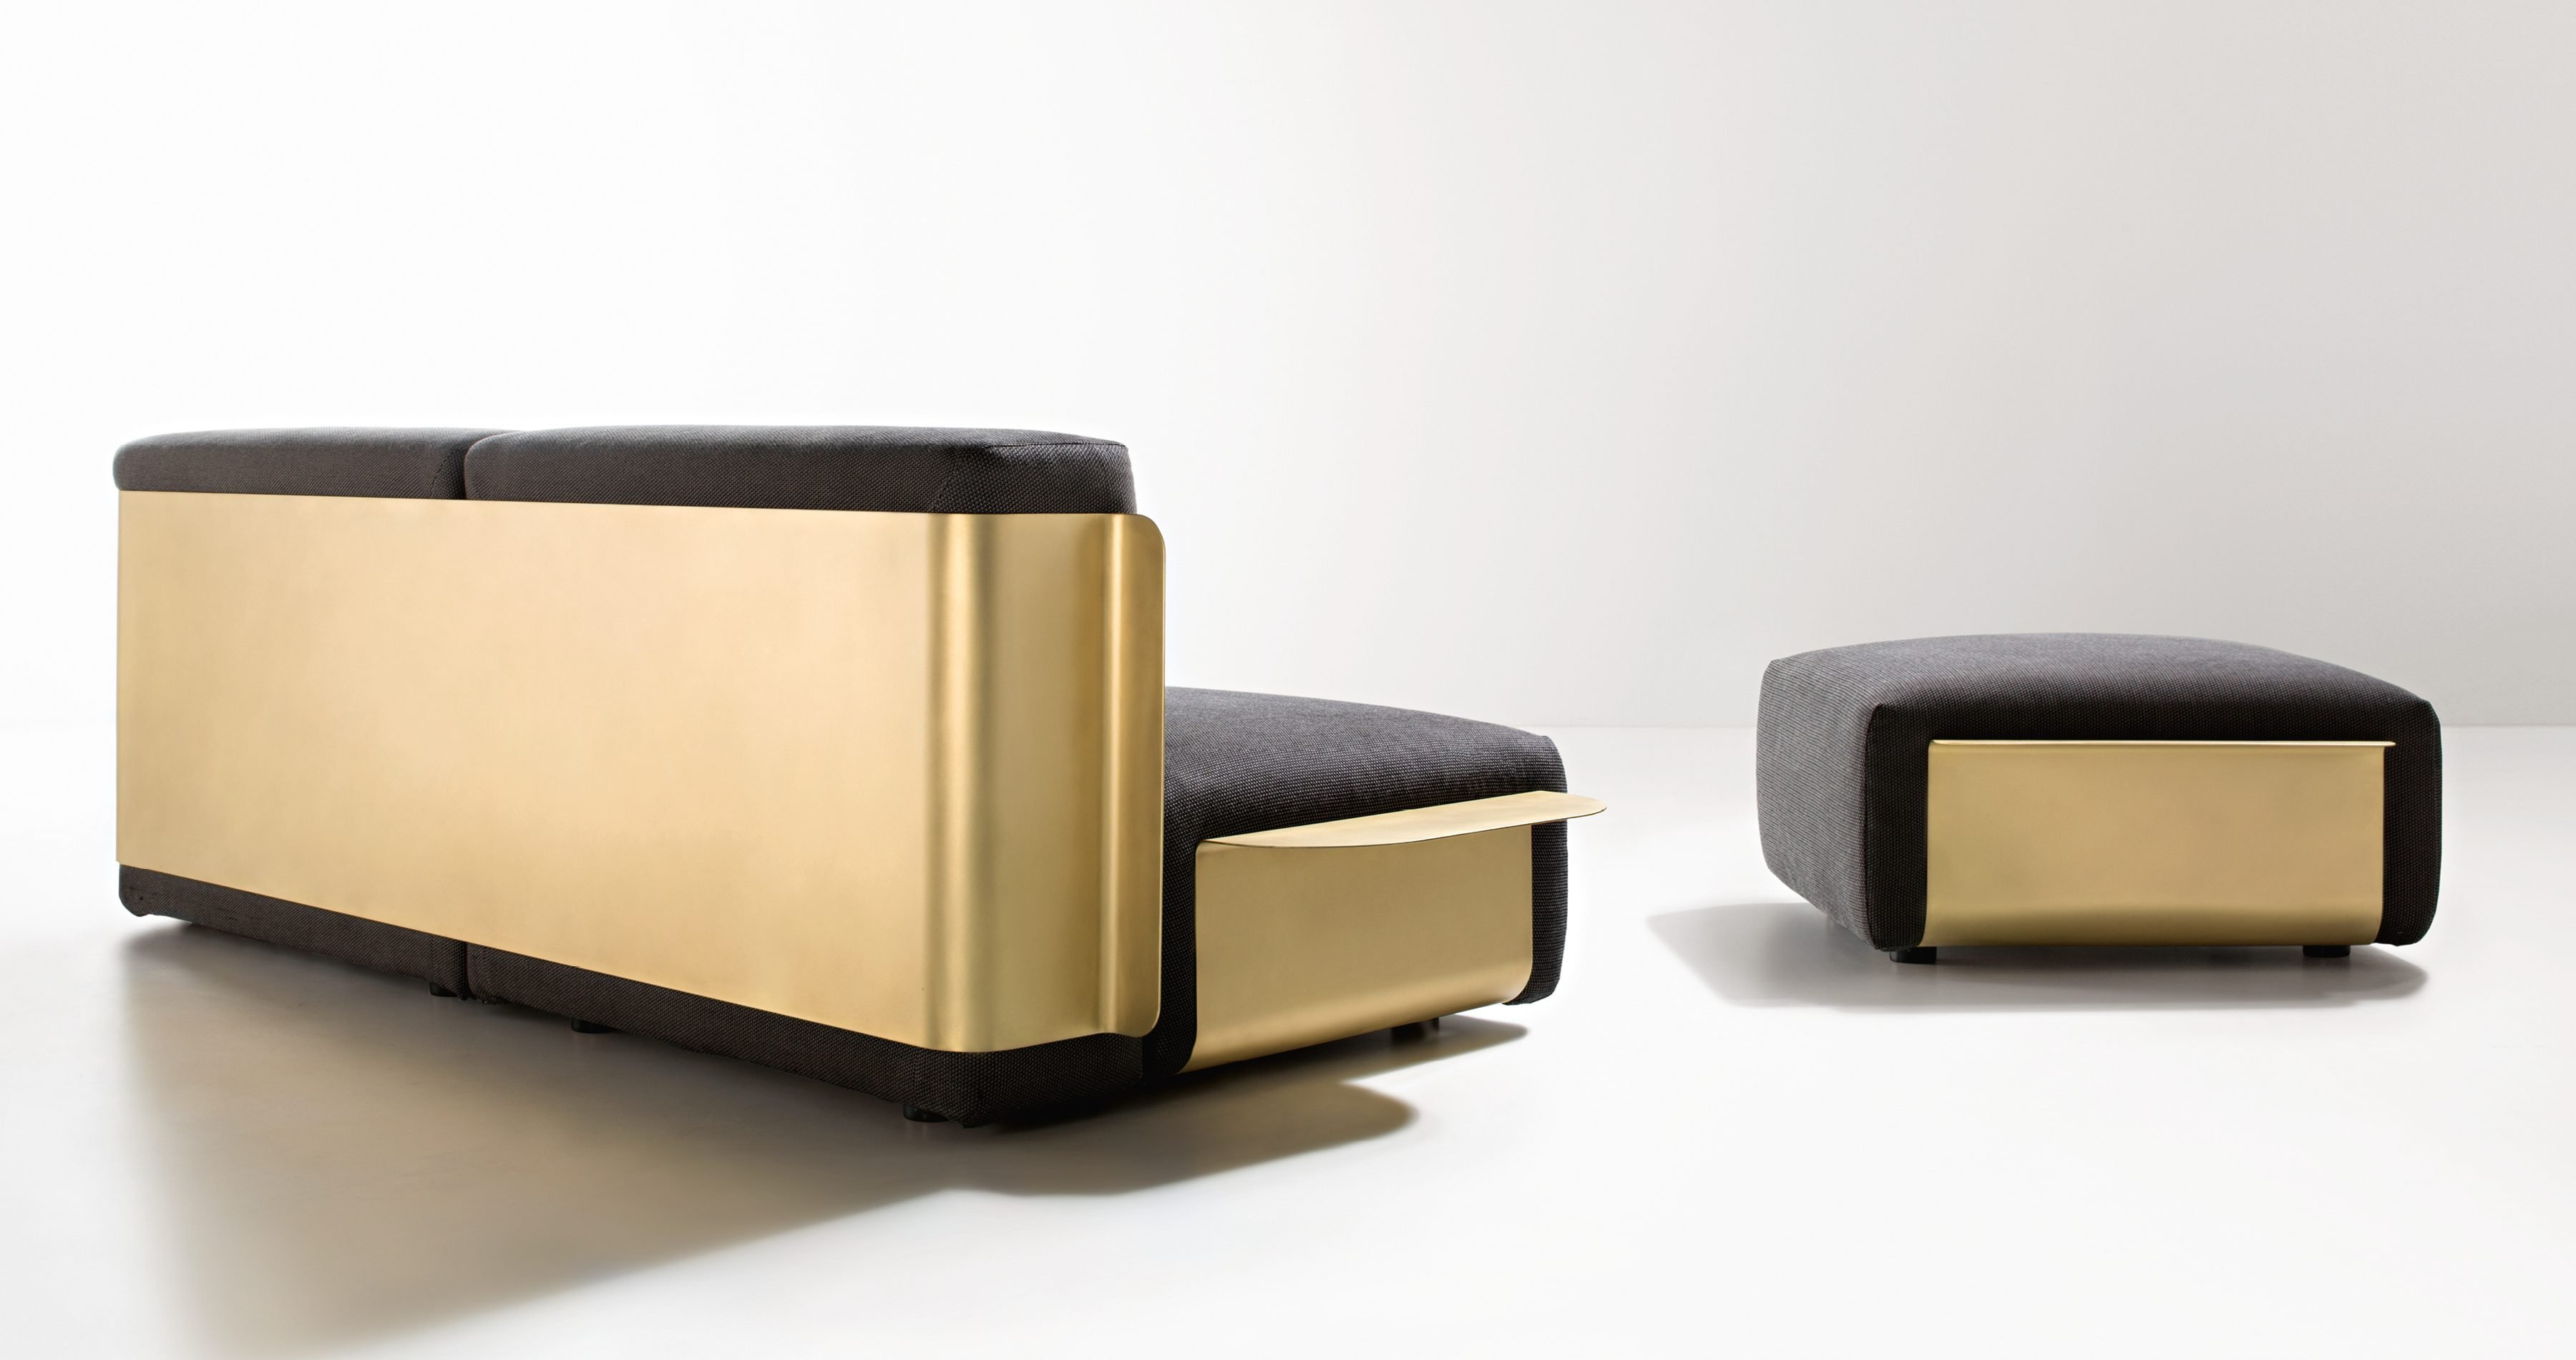 Loom Sofa pouf from De Castelli, designed by Filippo Pisan